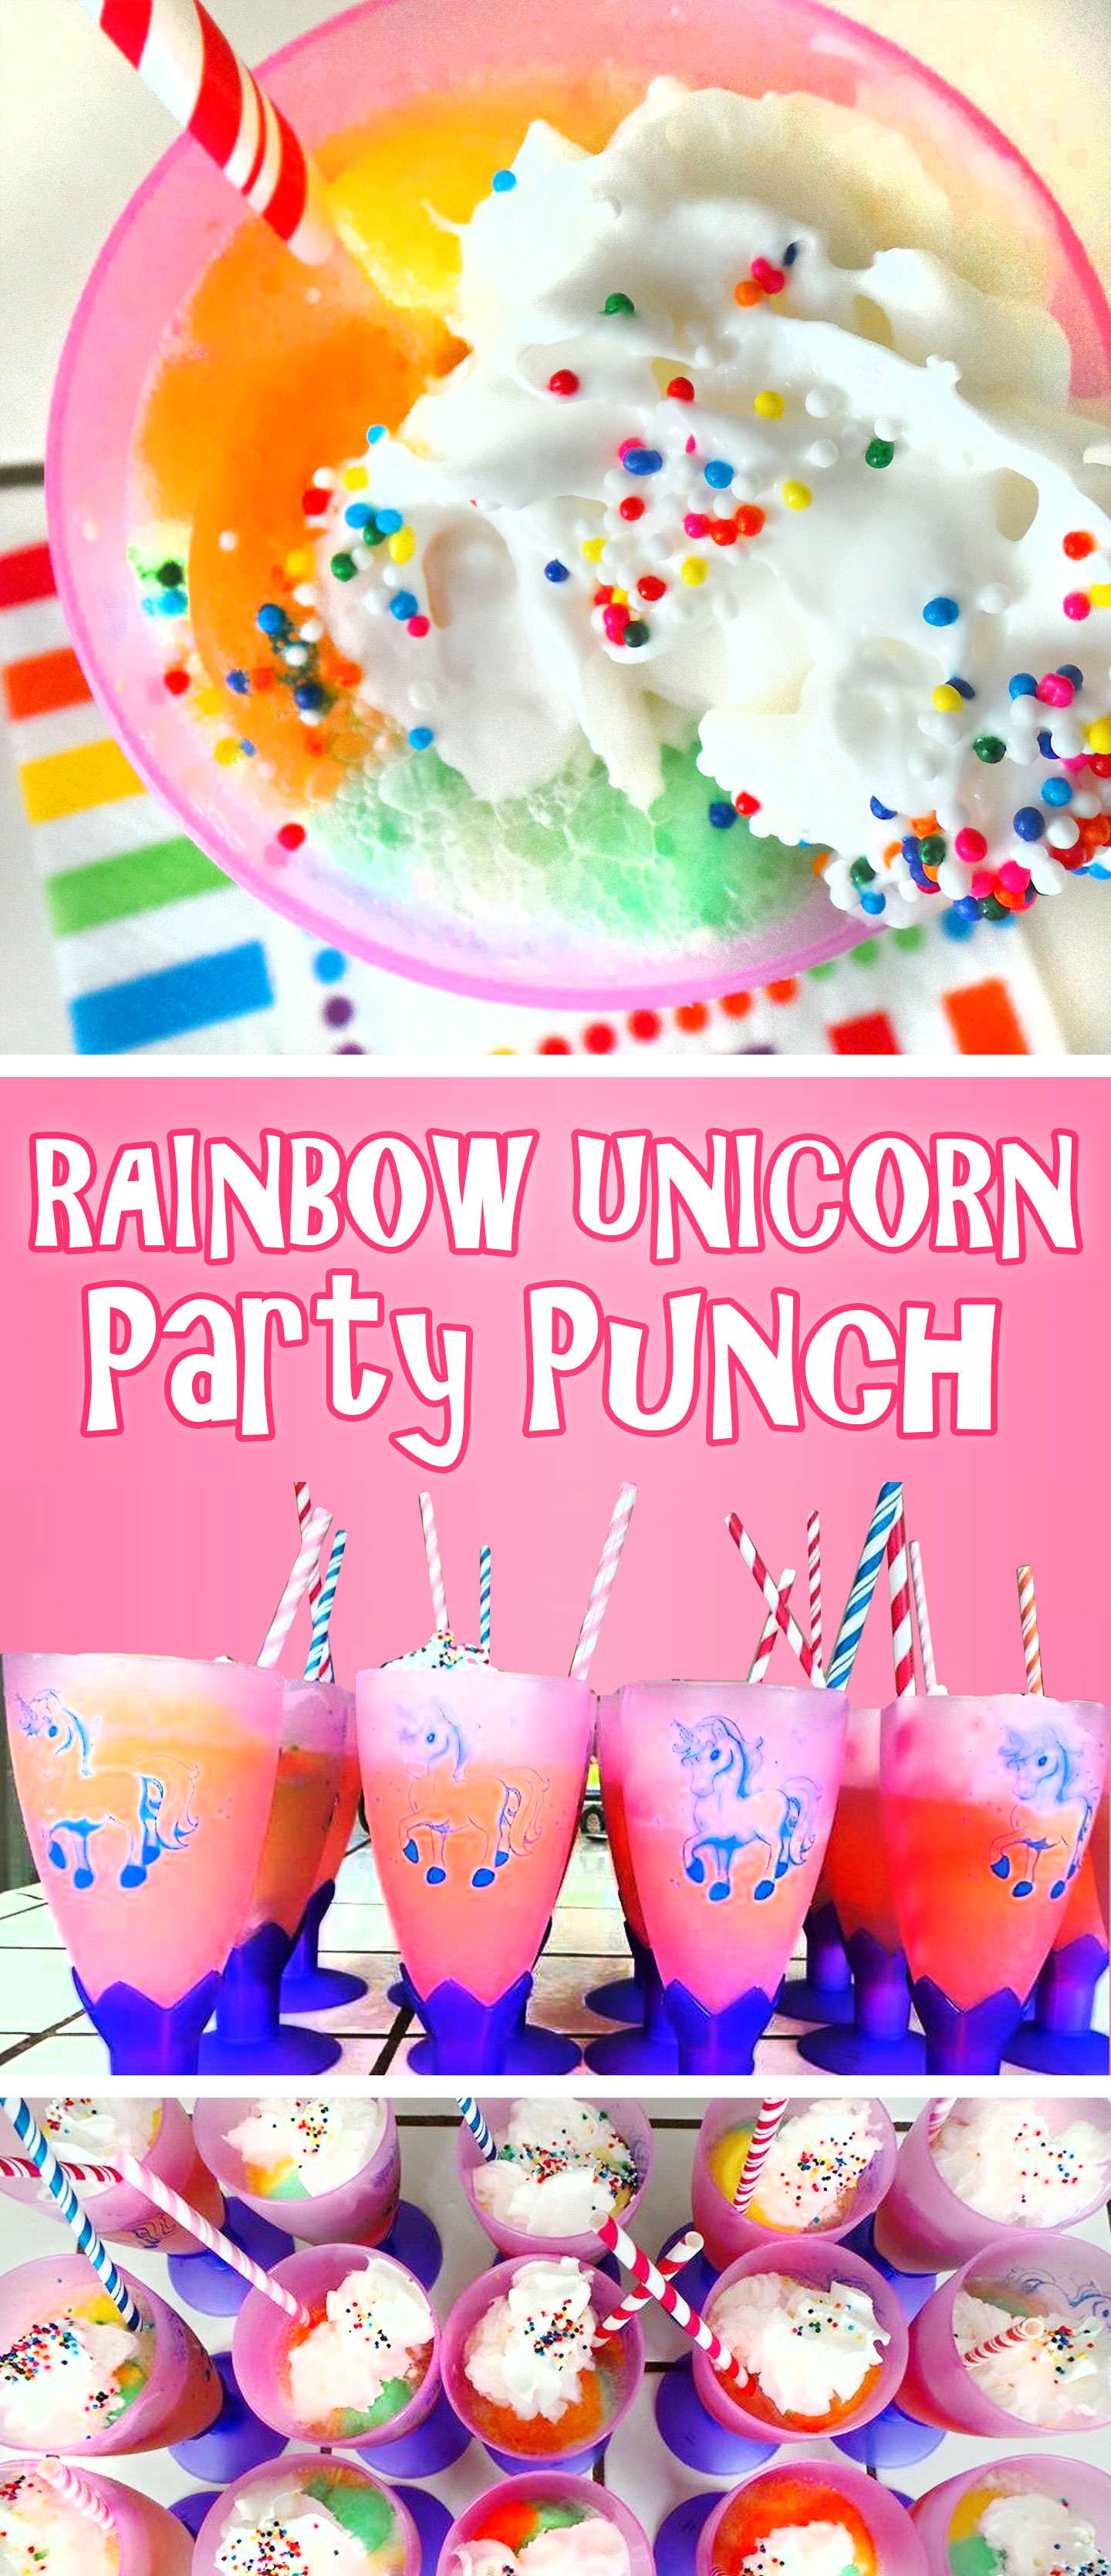 Rainbow Unicorn Party Punch Unicorn Punch Recipe